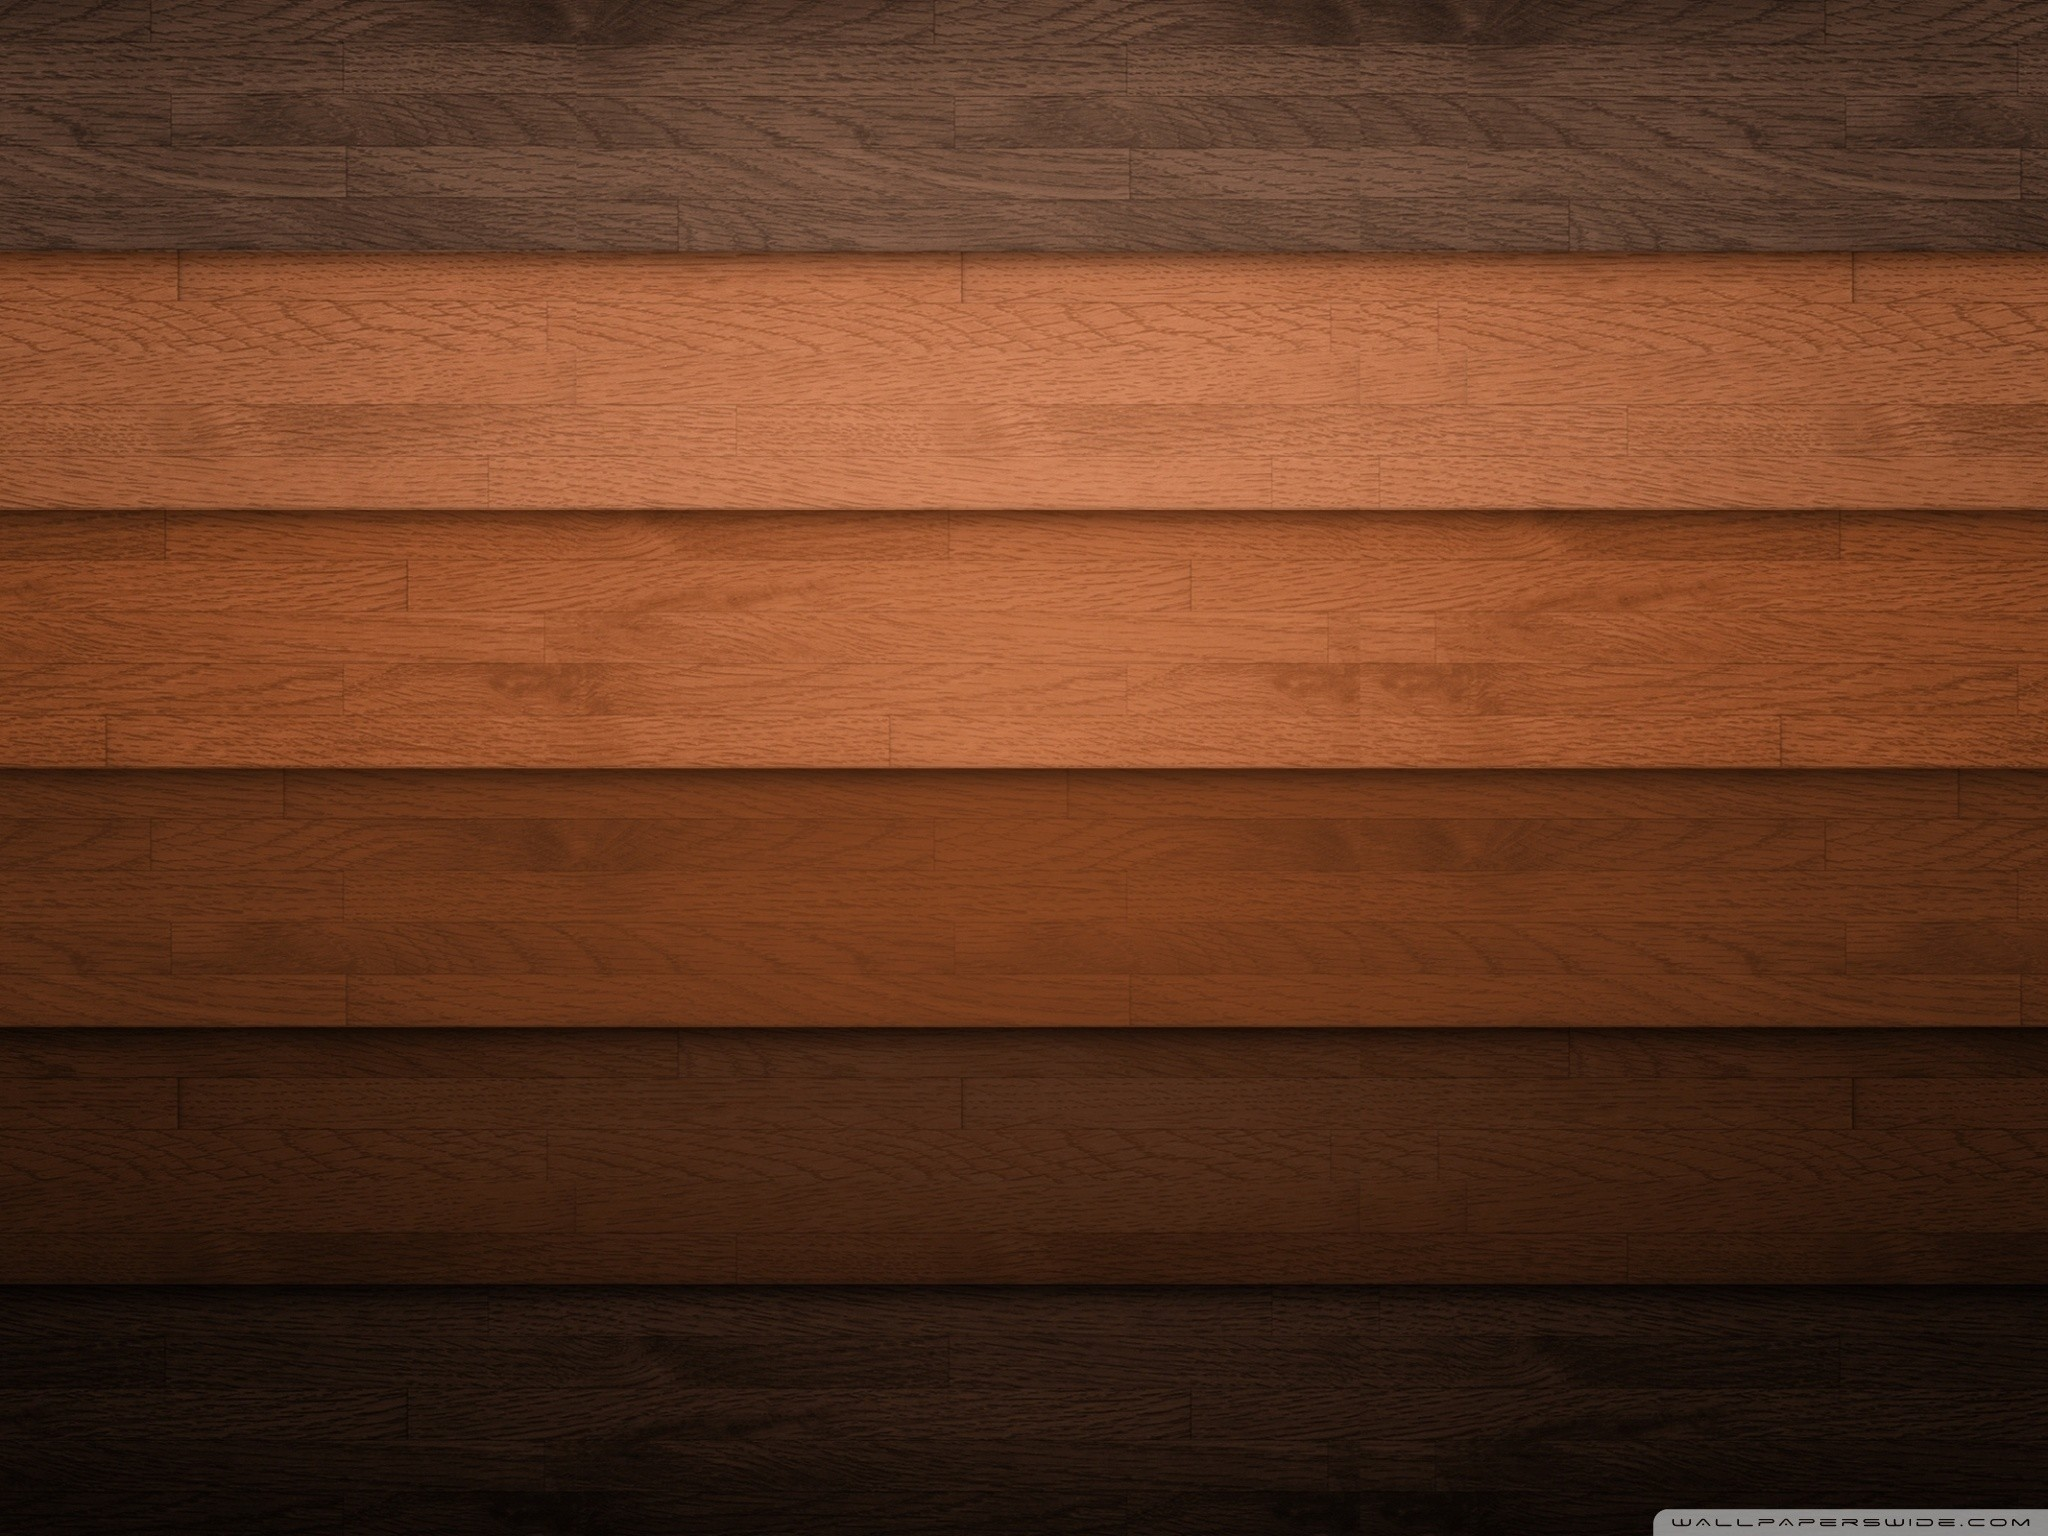 Wood Plank Wallpaper 33 images 2048x1536